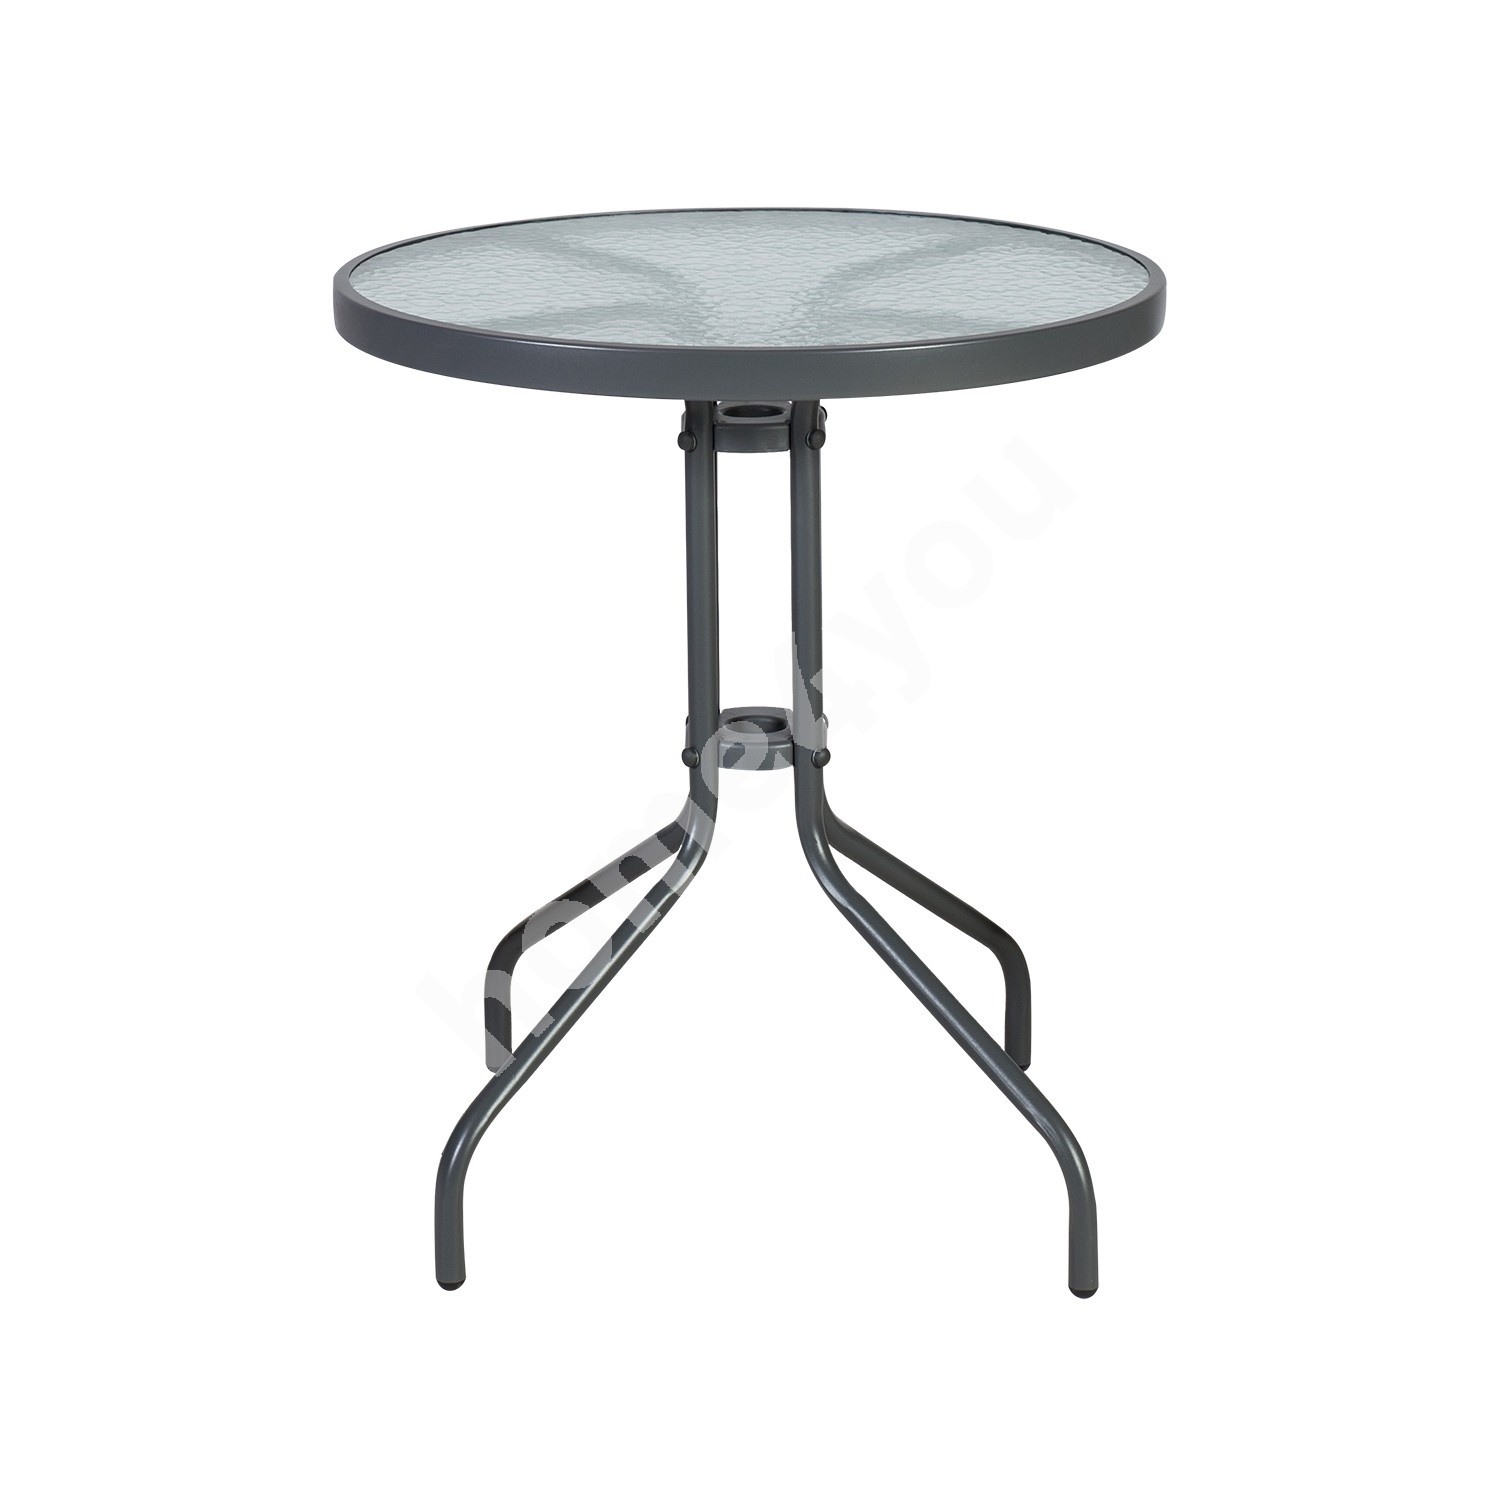 Table BISTRO D60xH70cm, table top: clear tempered wave glass, metal frame, color: grey